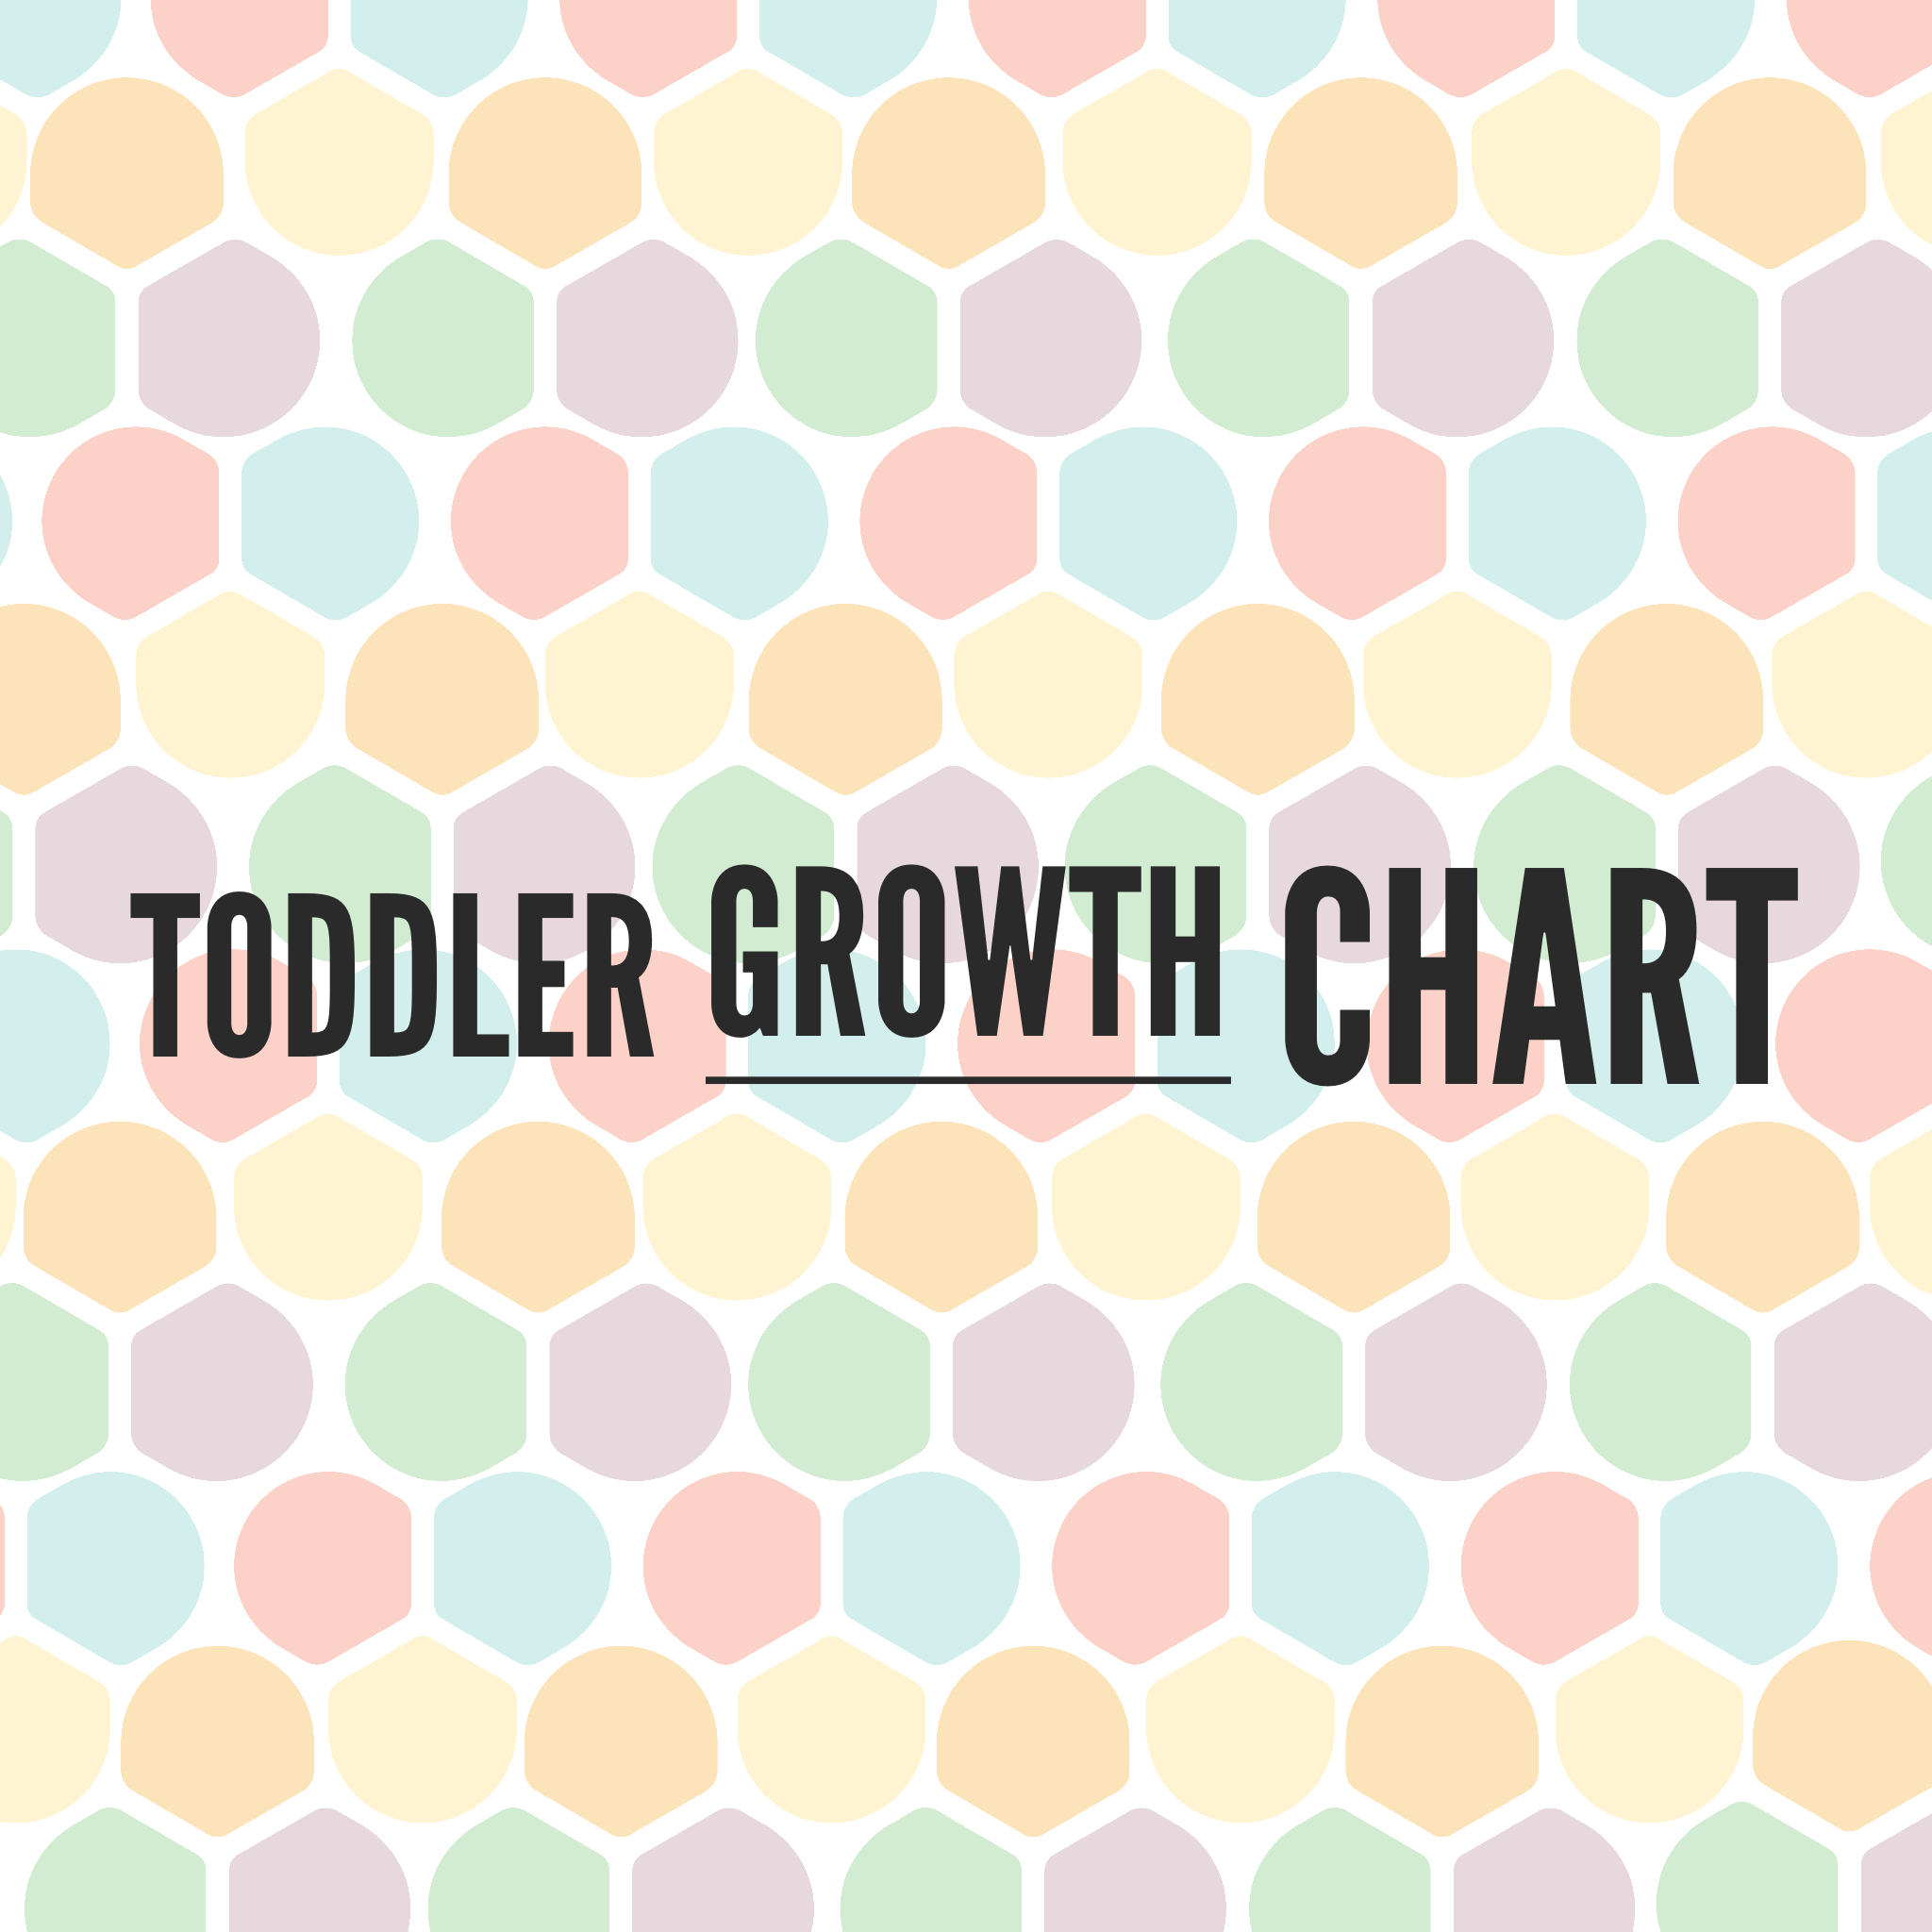 Child growth chart i toddler growth chart i weight and height child growth chart i toddler growth chart i weight and height chart in photos use nvjuhfo Images